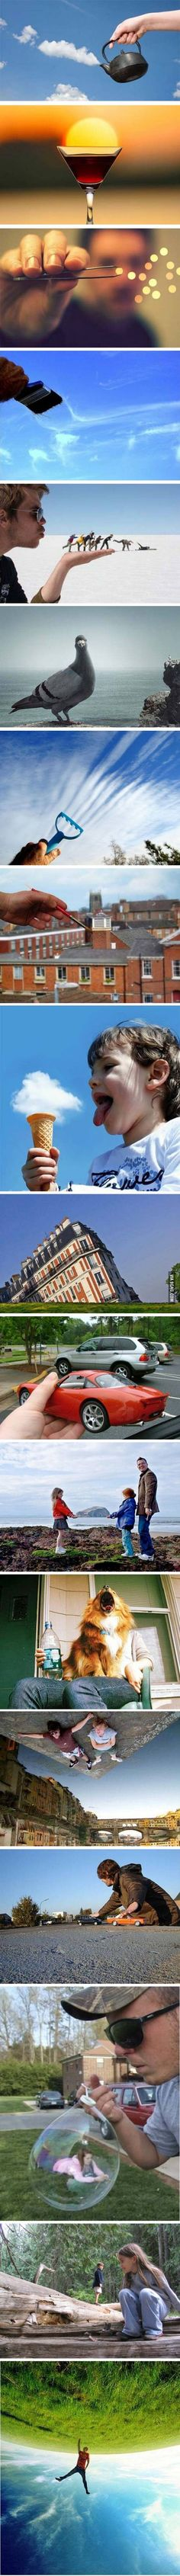 Forced Perspective - 9GAG